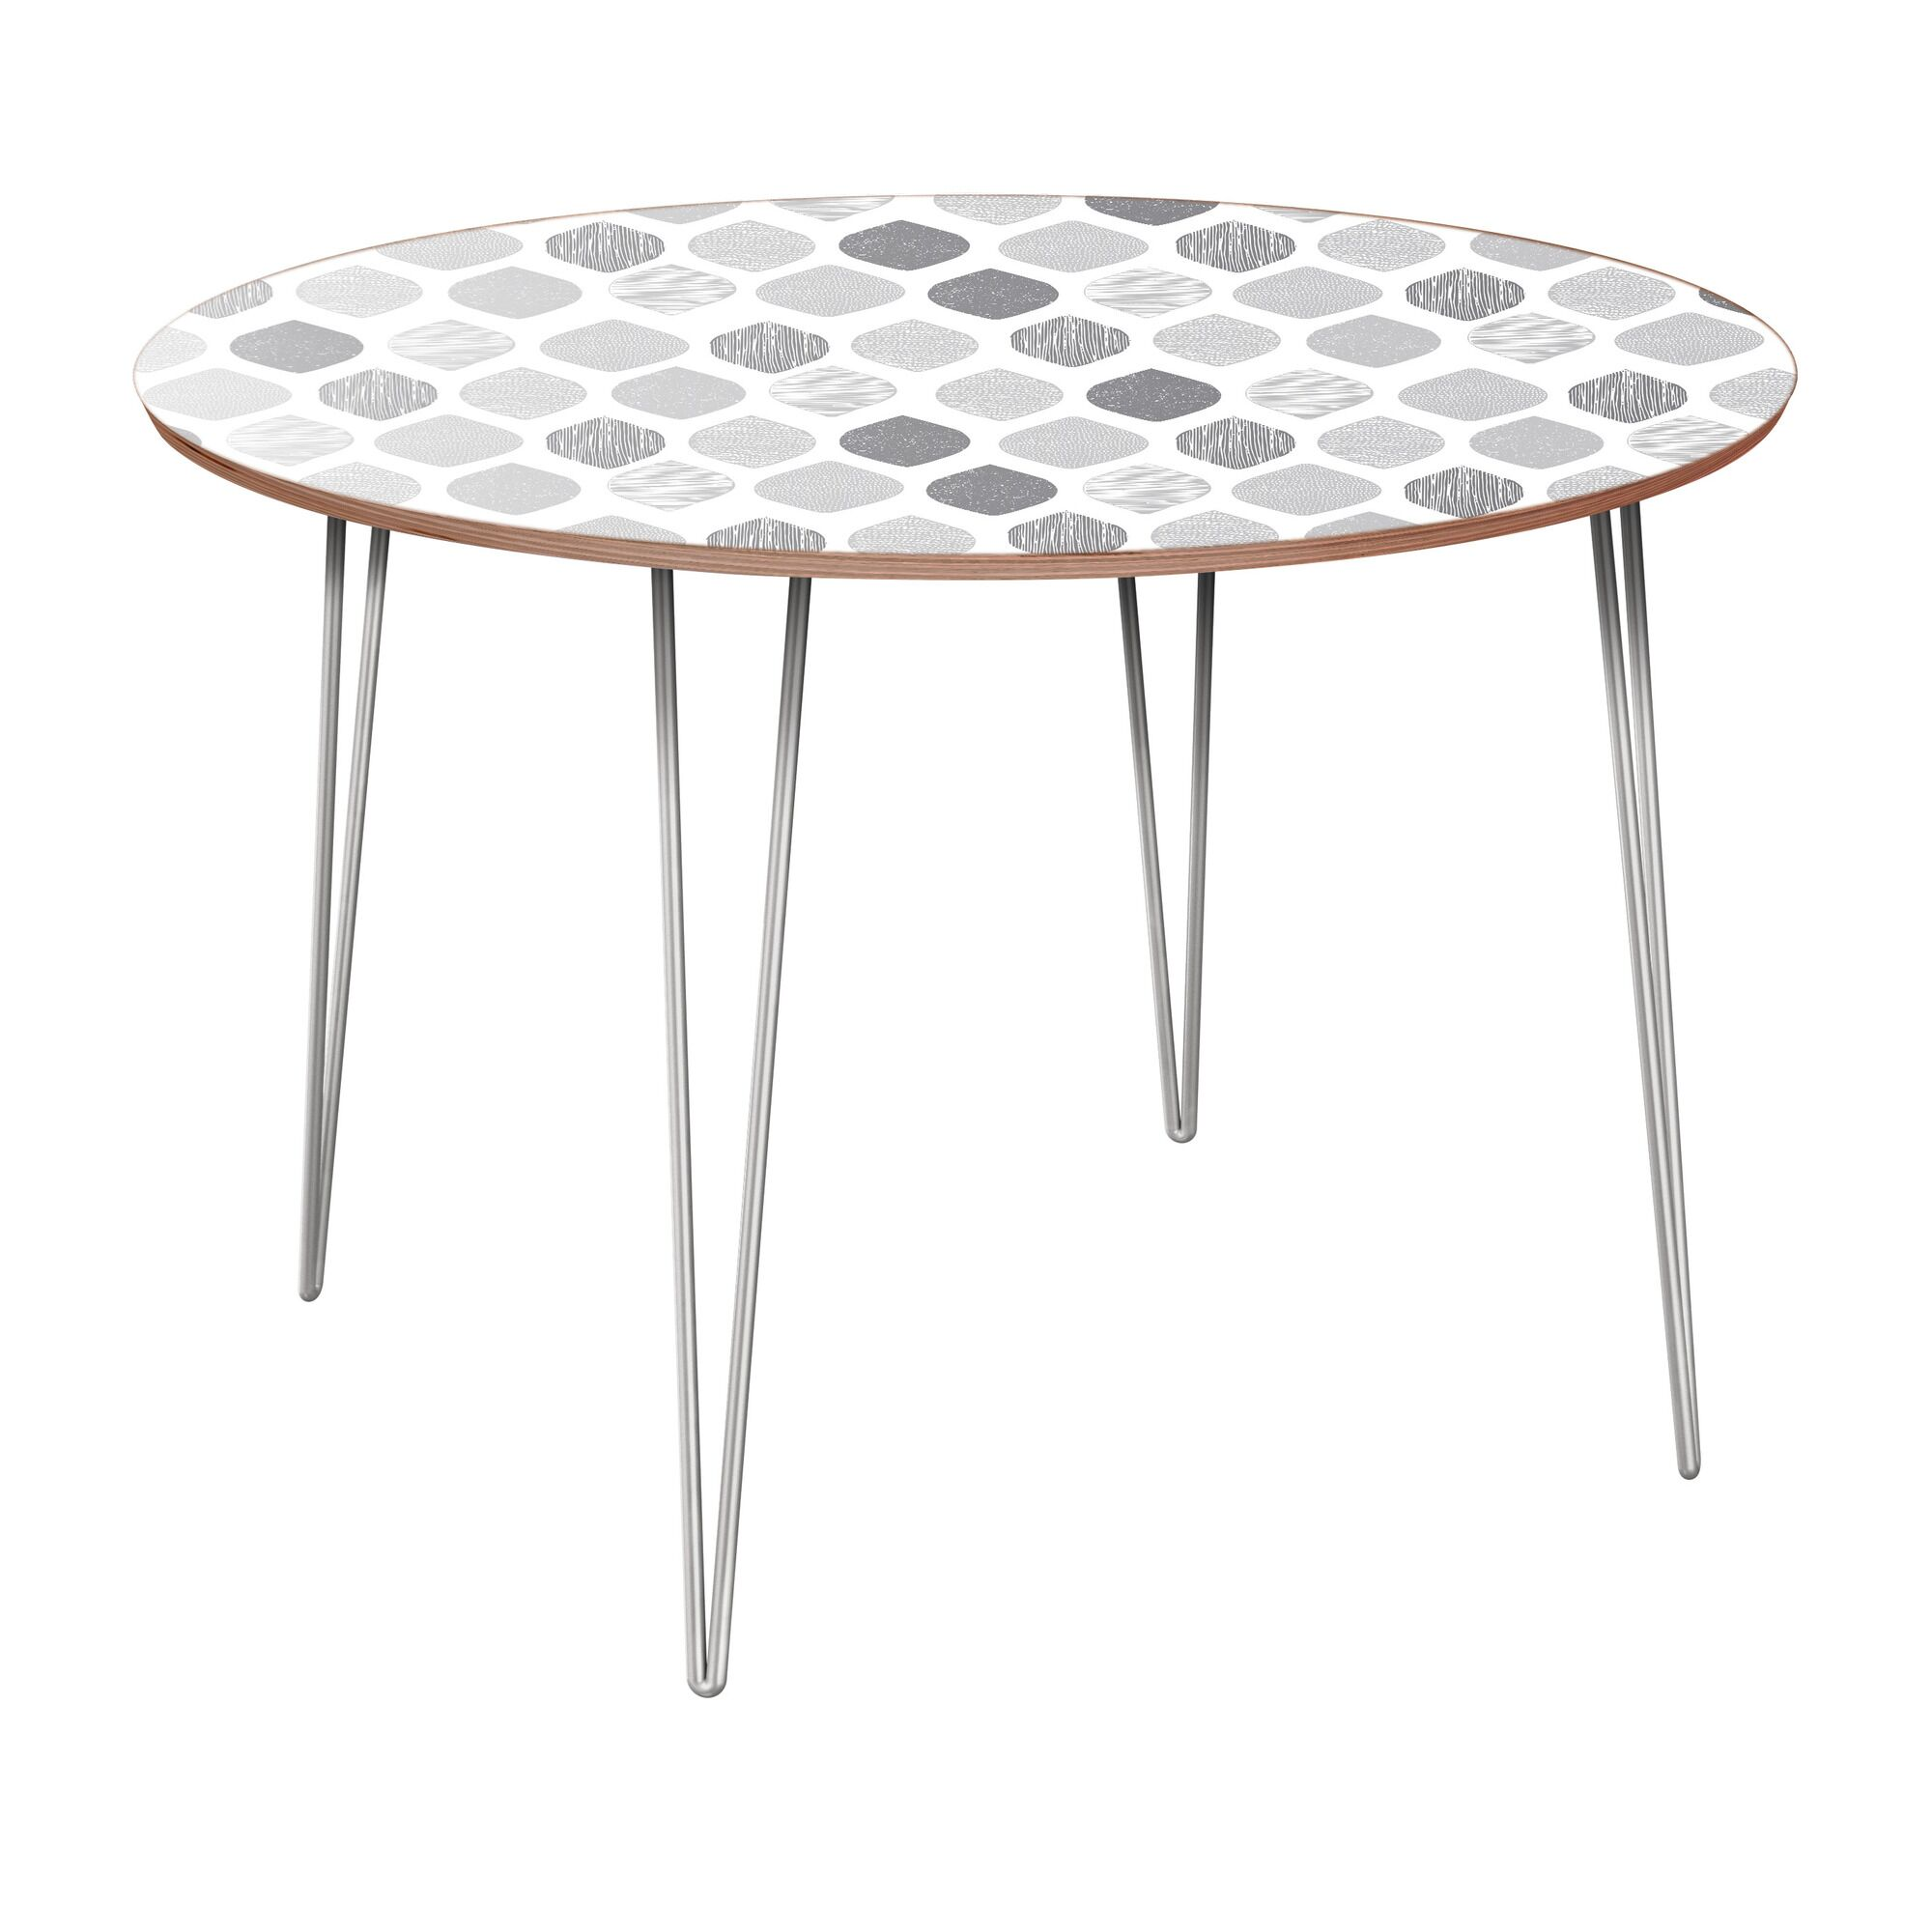 Canas Dining Table Table Base Color: Chrome, Table Top Color: Walnut